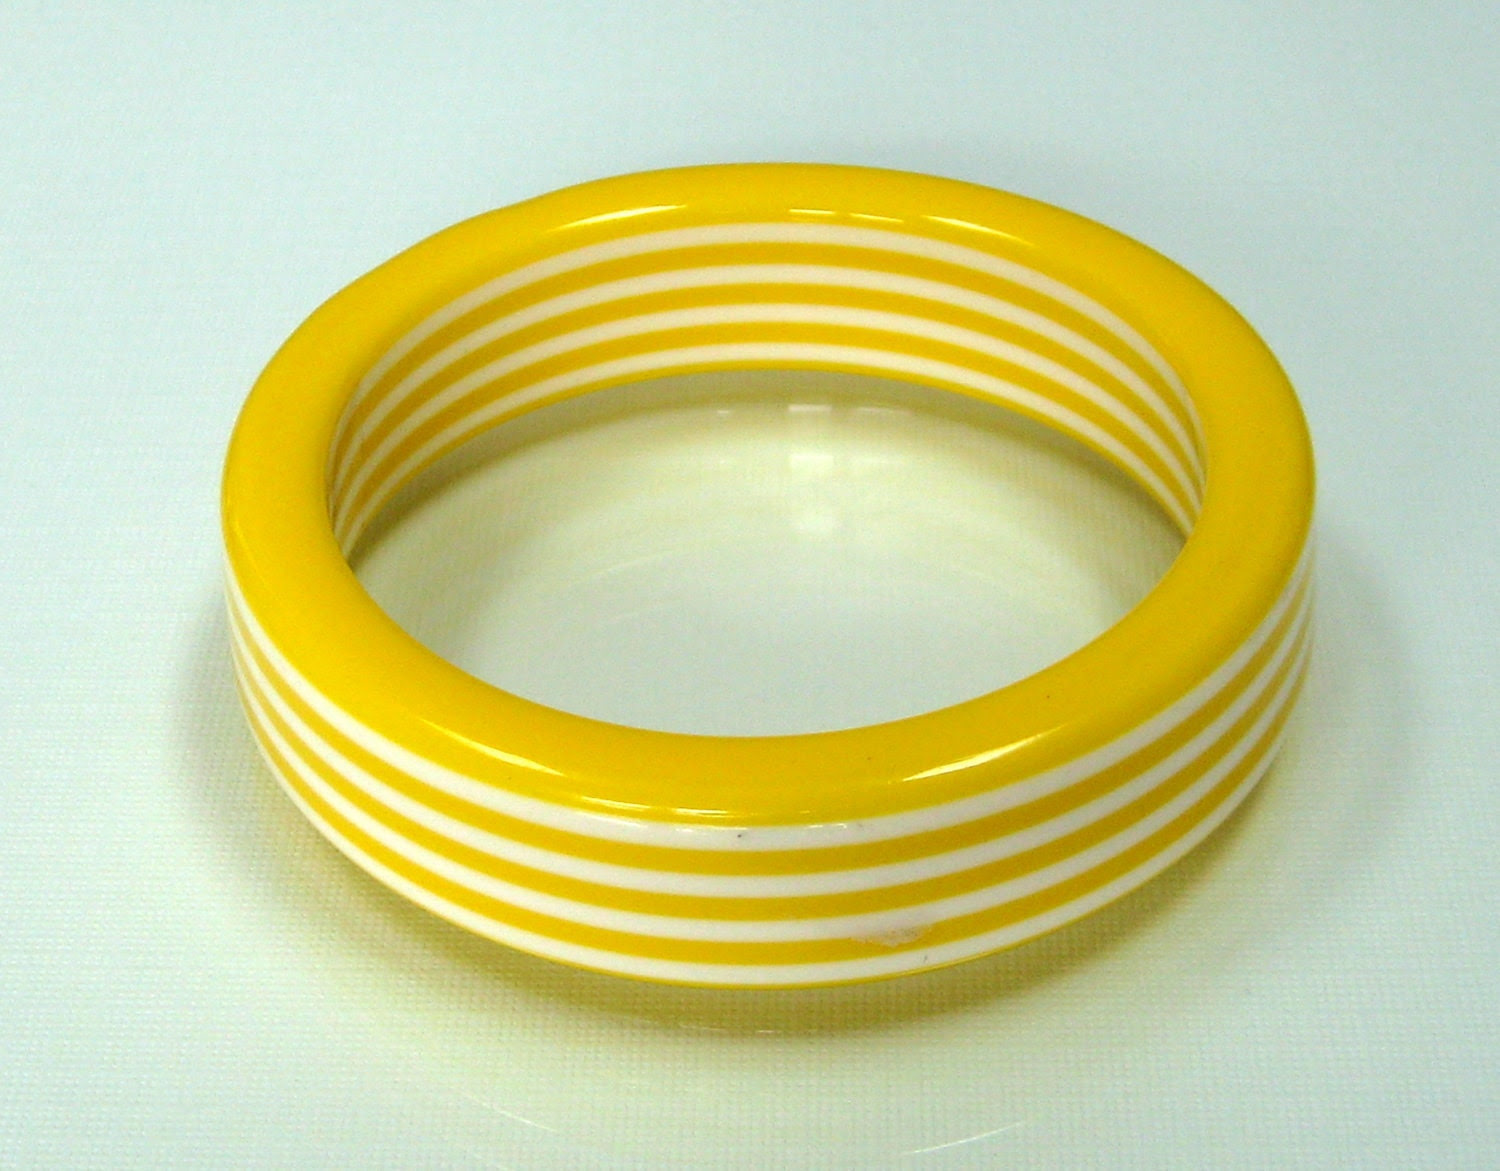 Vintage MOD bangle bracelet Striped Yellow and White lucite